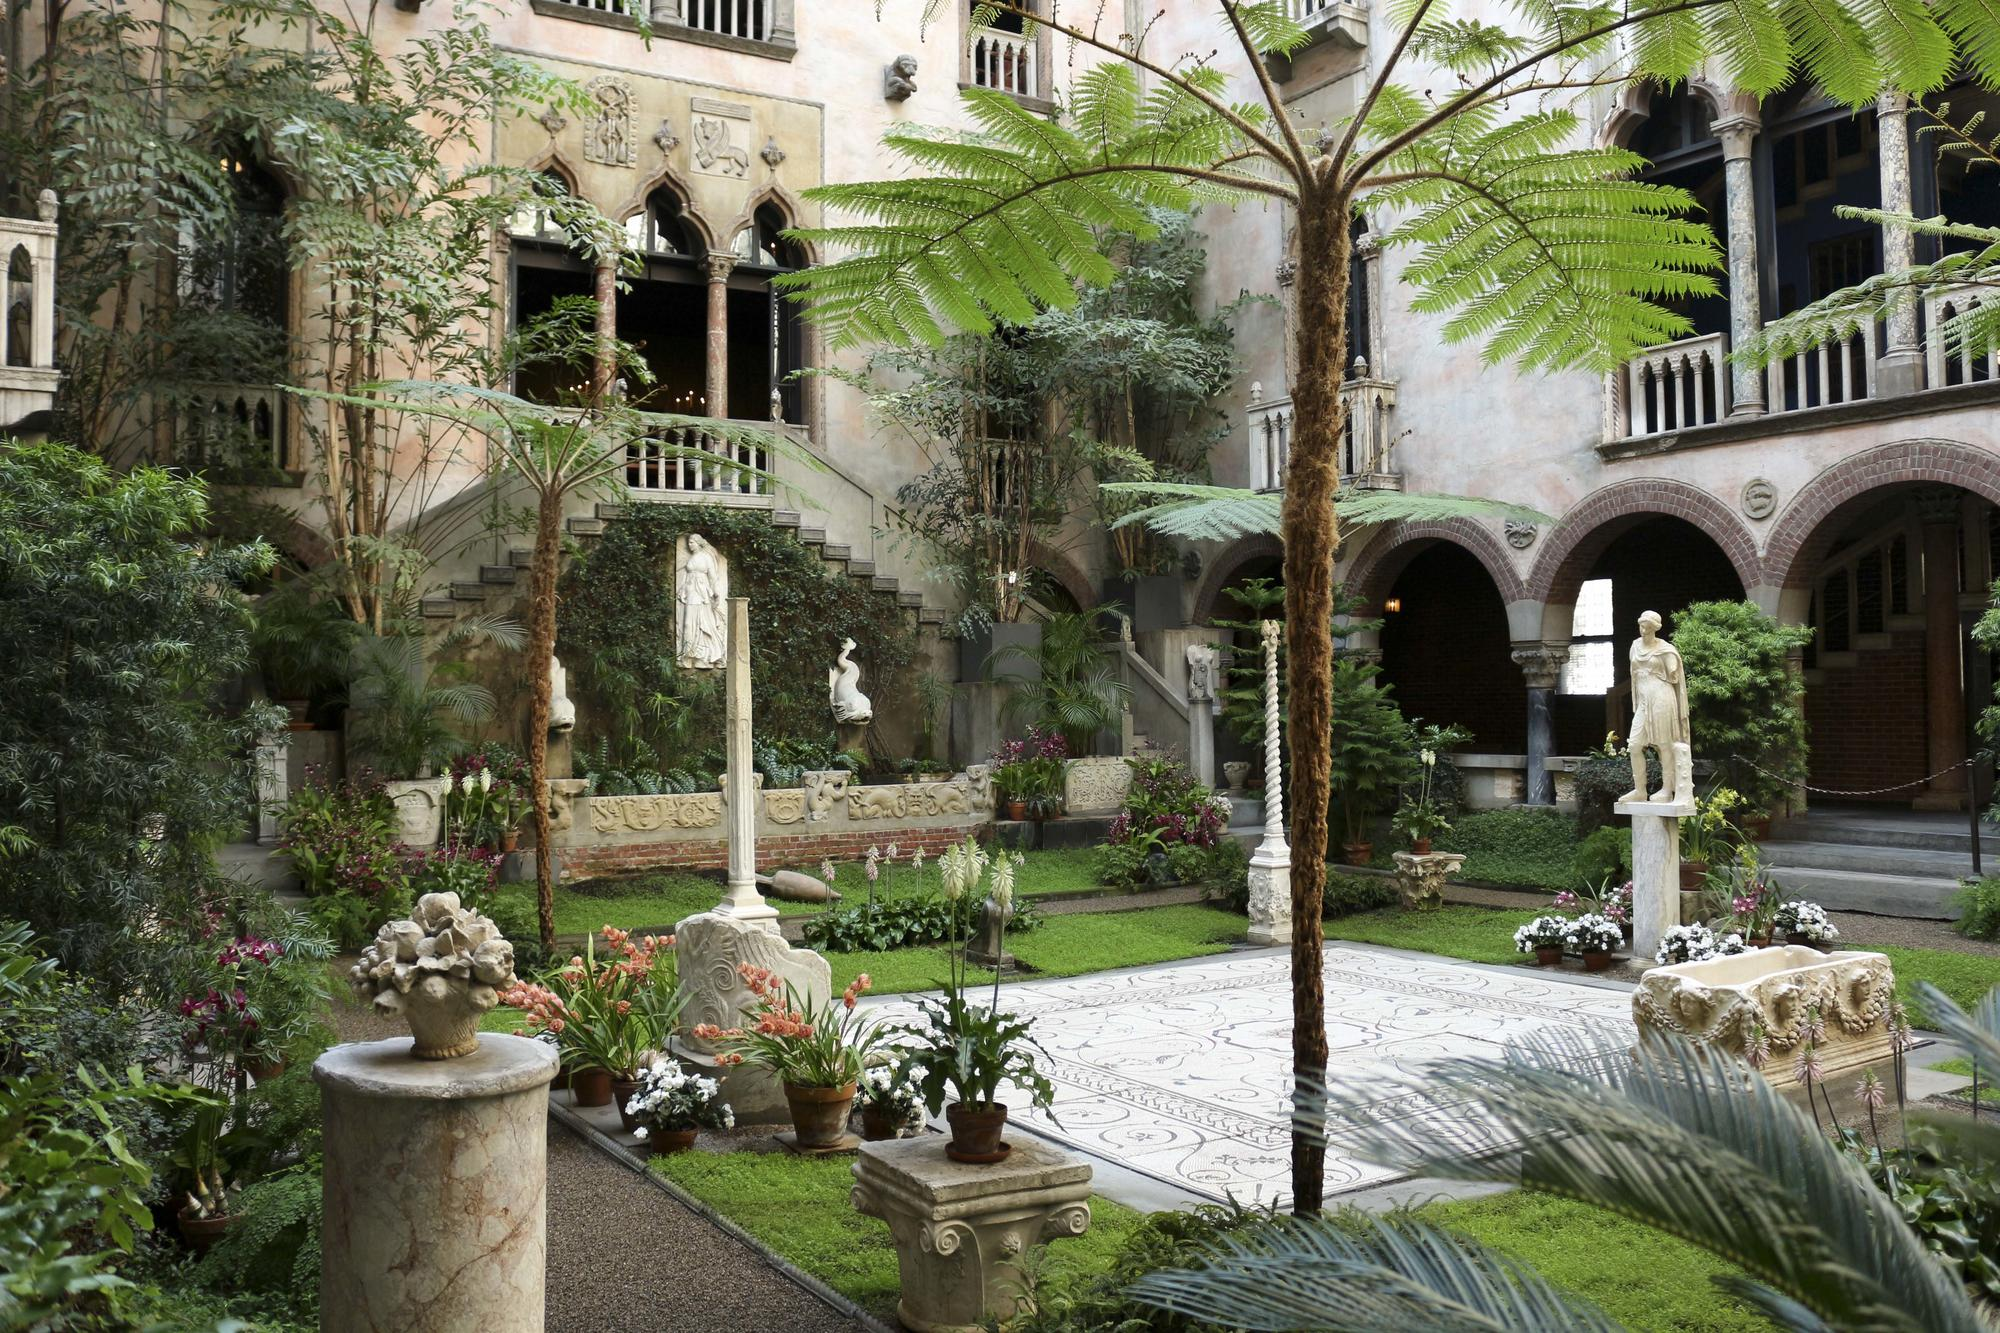 The Courtyard. Photo by Siena Scarff.